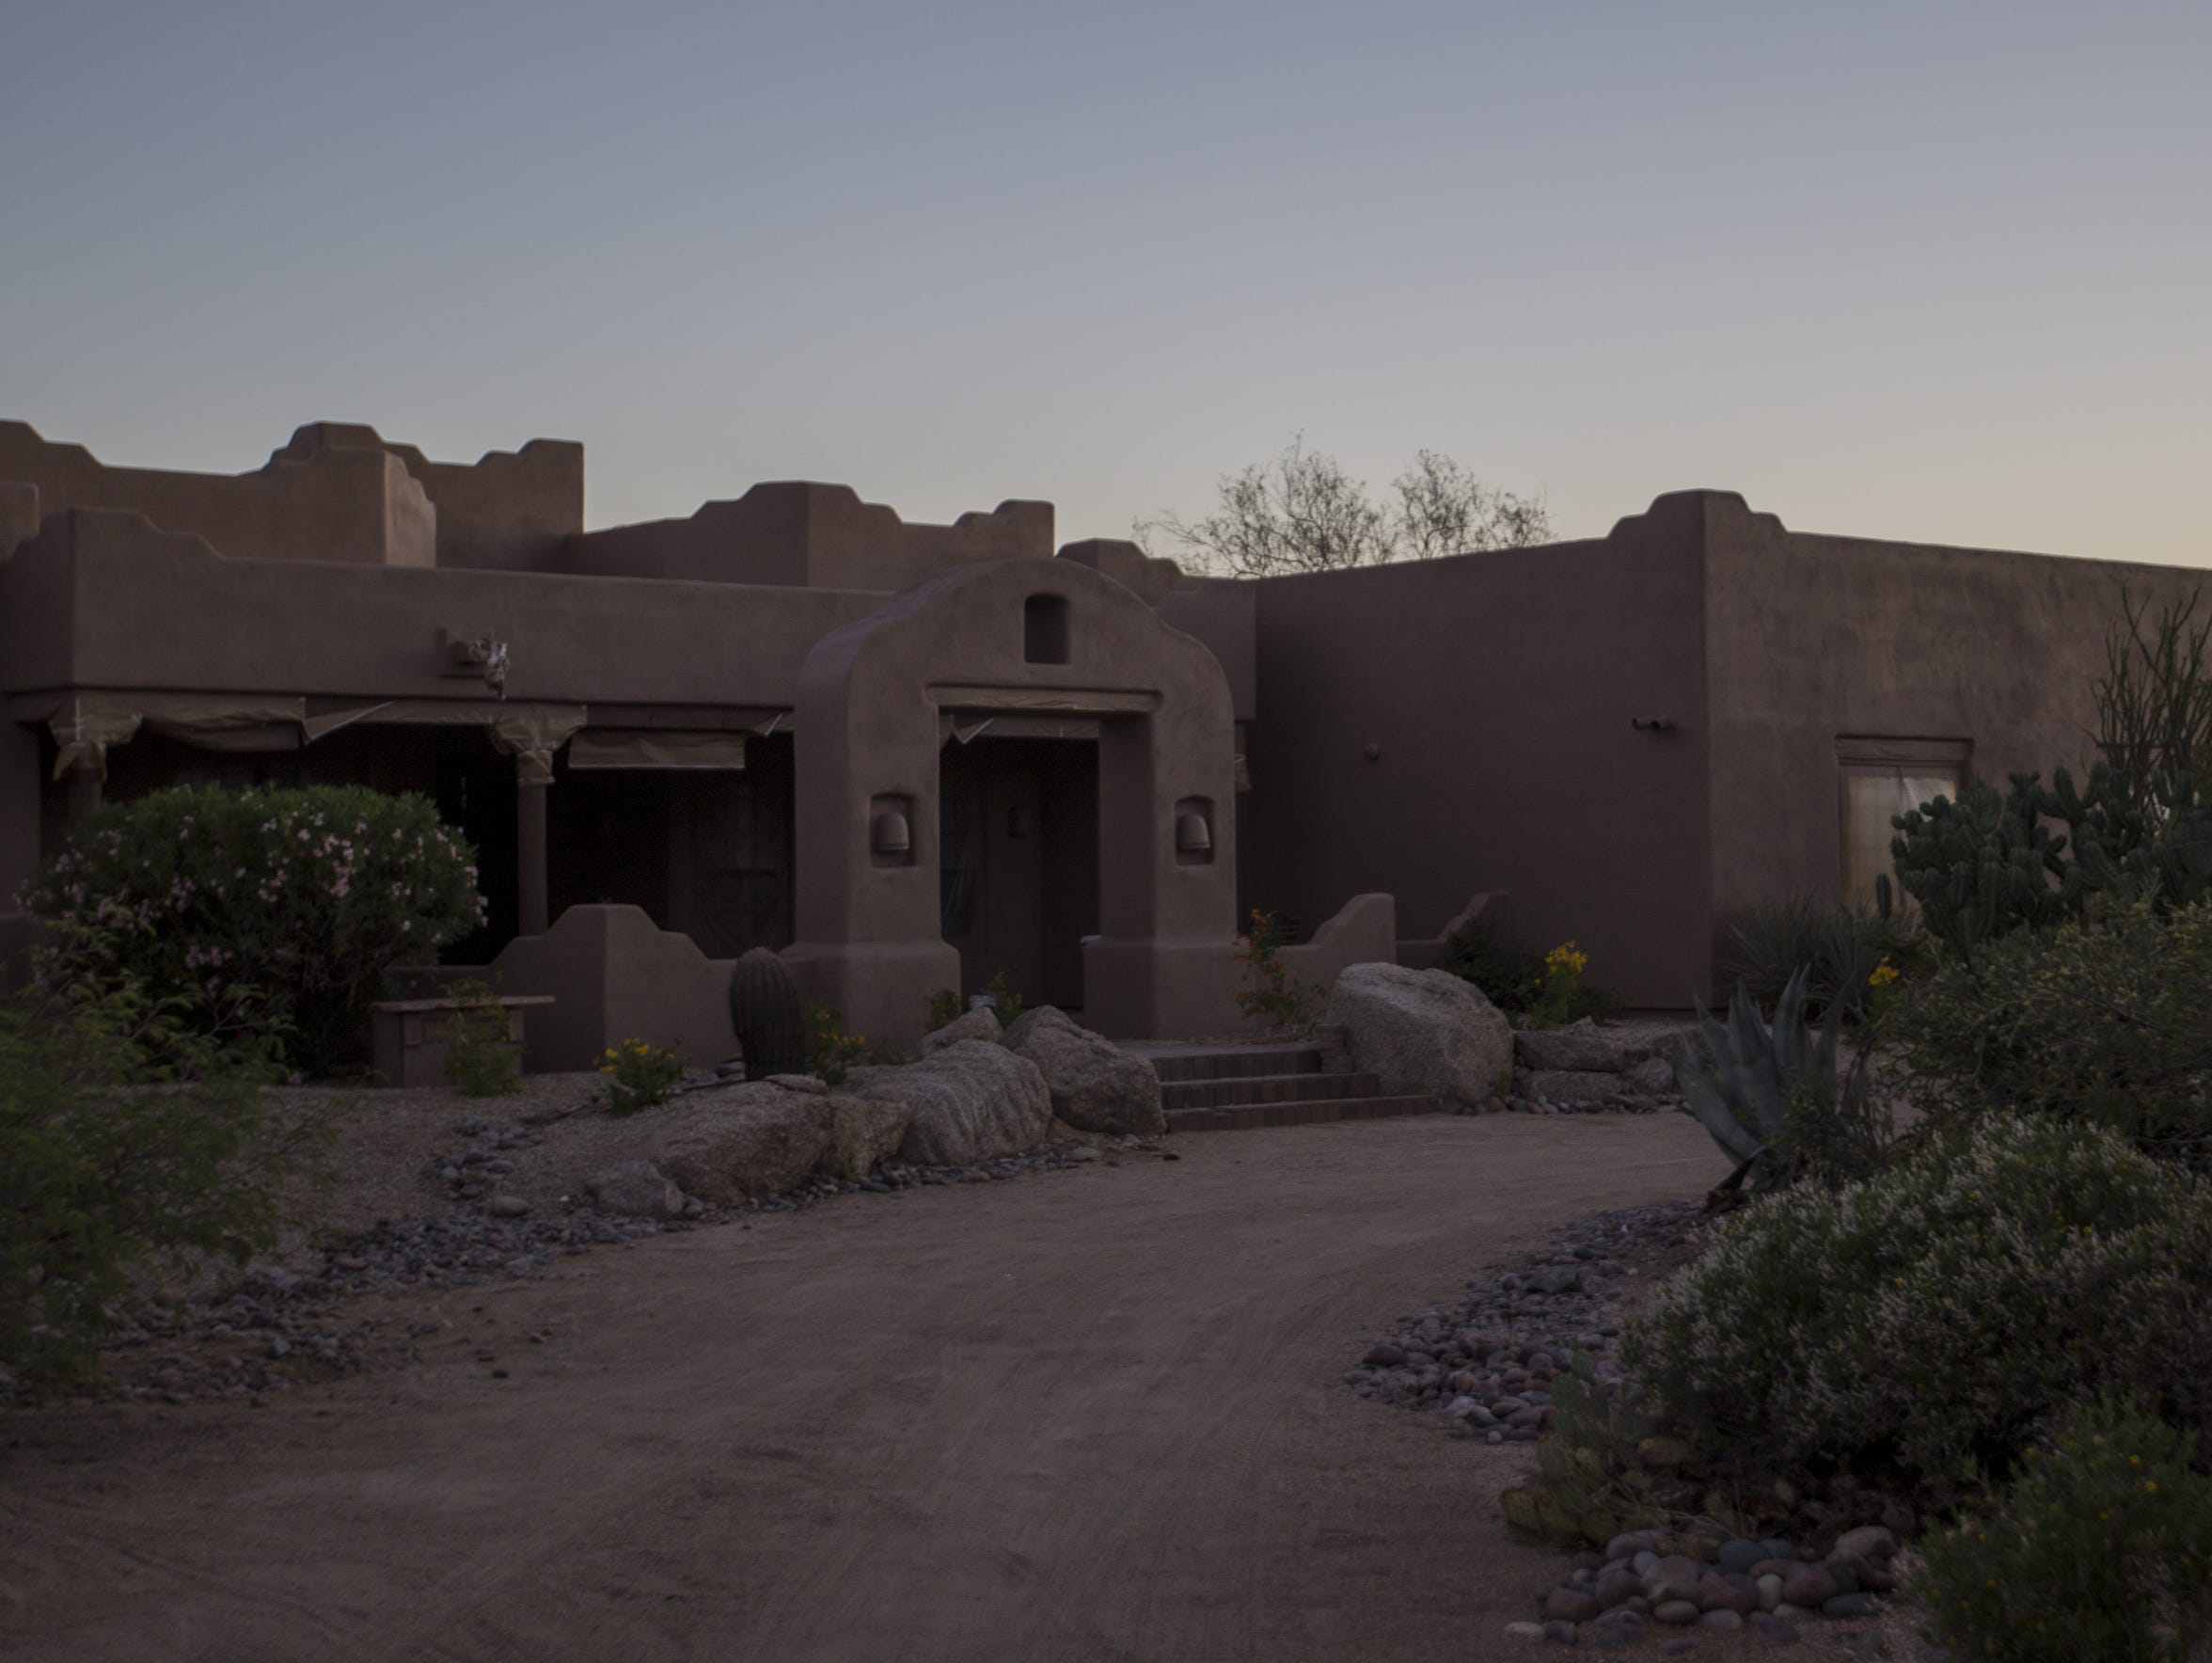 James Lee was found dead in his Scottsdale home in